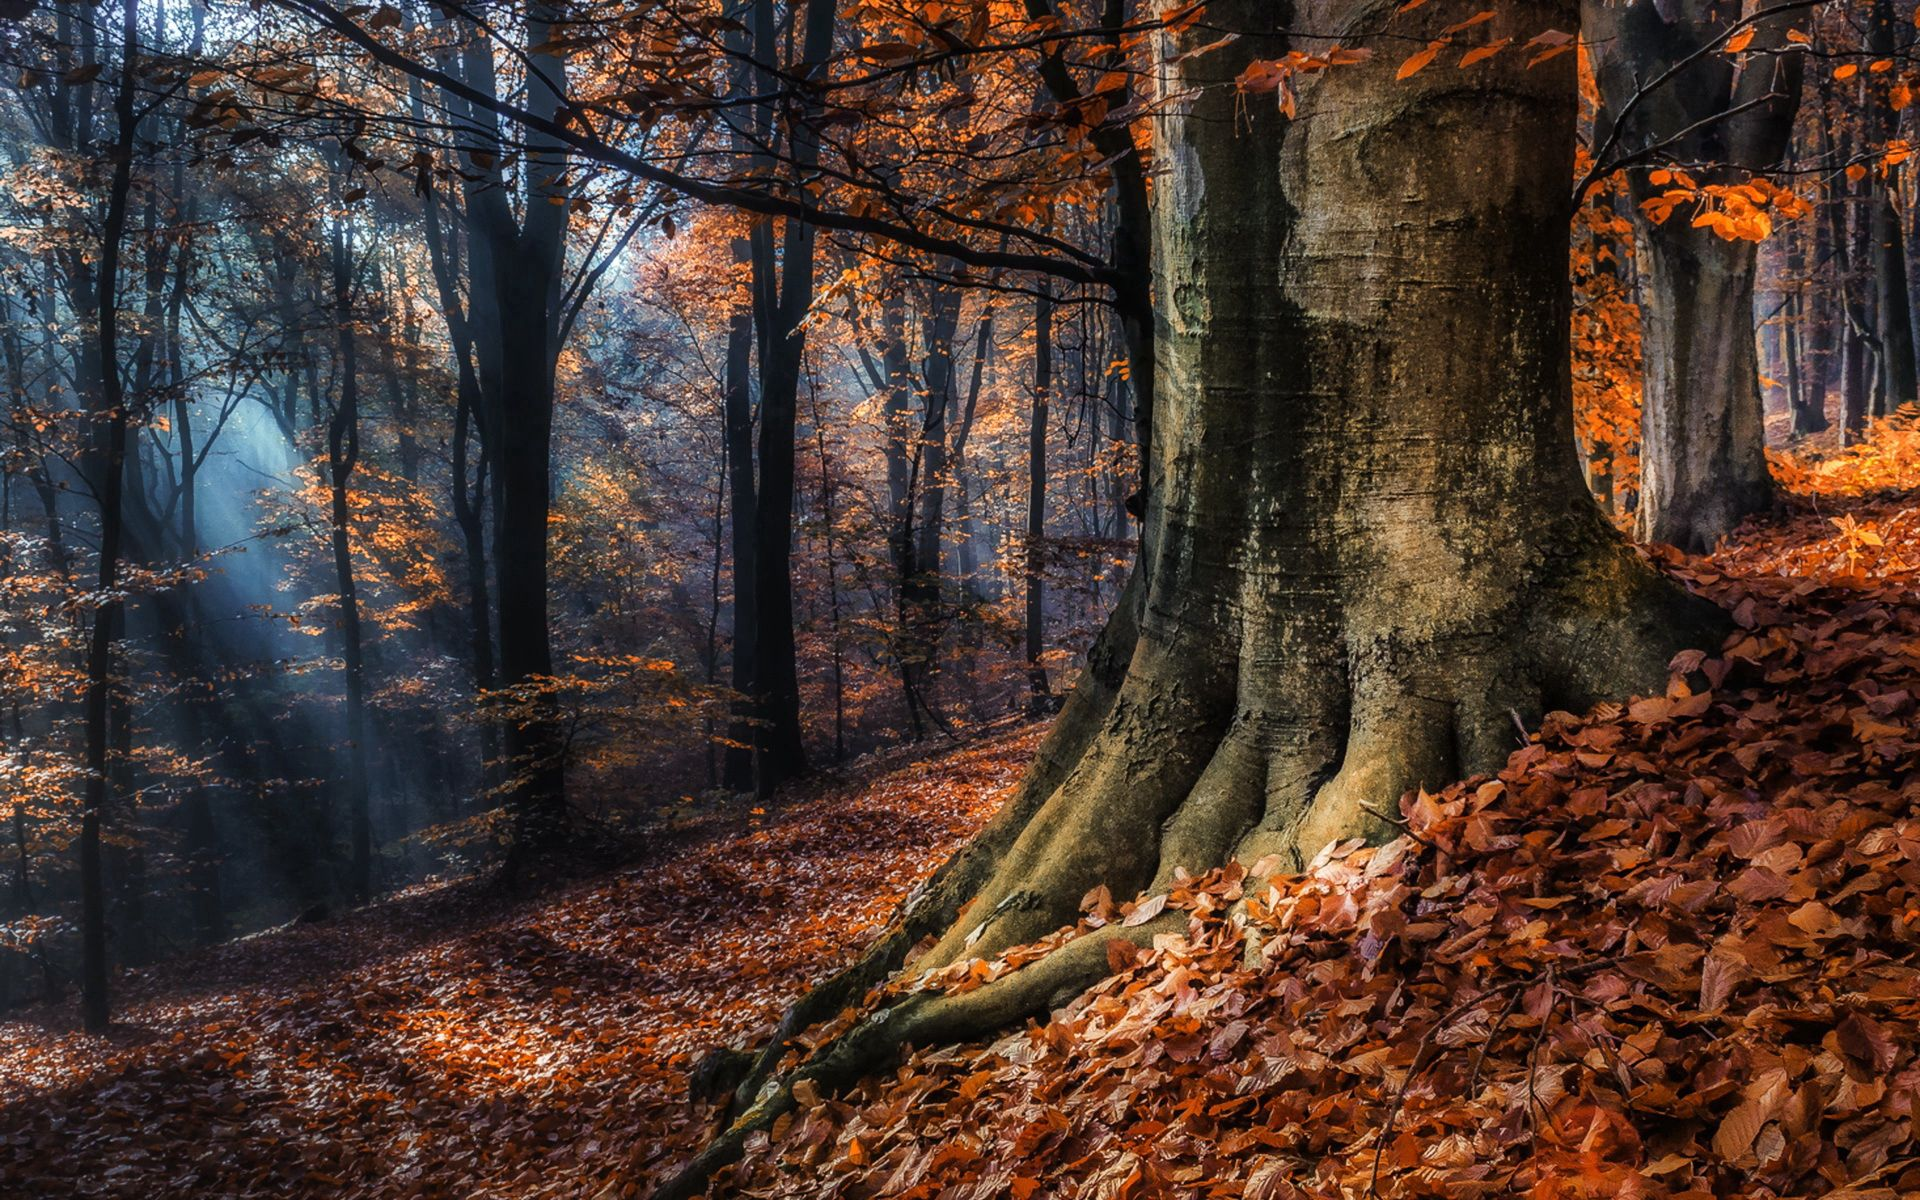 92116 download wallpaper Autumn, Nature, Trees, Forest, Foliage screensavers and pictures for free